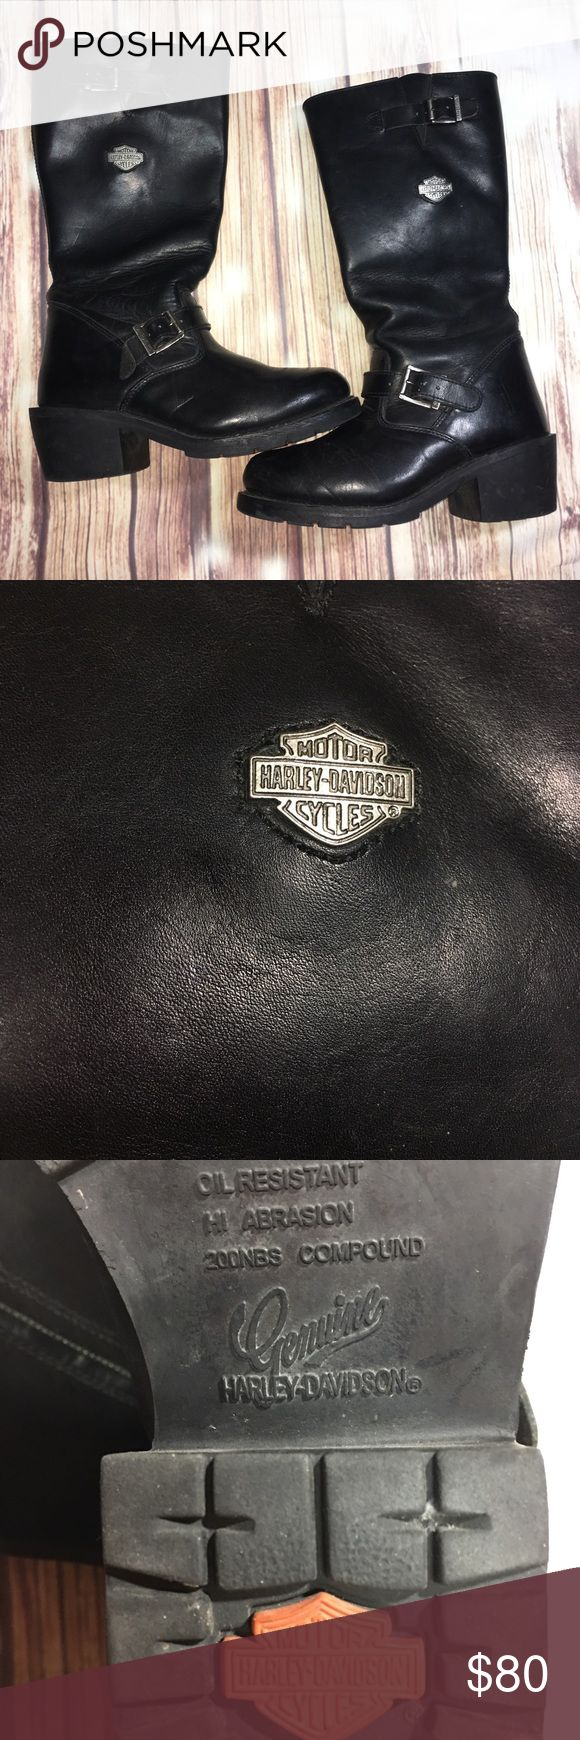 Harley Davidson Black Leather Motorcycle Boots You are currently viewing a pair of Harley Davidson Black Leather Harness Motorcycle Biker Boots US Women's 8.0 Item is in used condition. Some wear due to age/use. There are some scuffing/wear marks throughout. Soles are good condition but still good. Good be shined up nice but I'll leave that up to the new owner's discretion - partially because they look awesome in their worn-in look as-is. Womens US Size 8.0 Black leather boots…